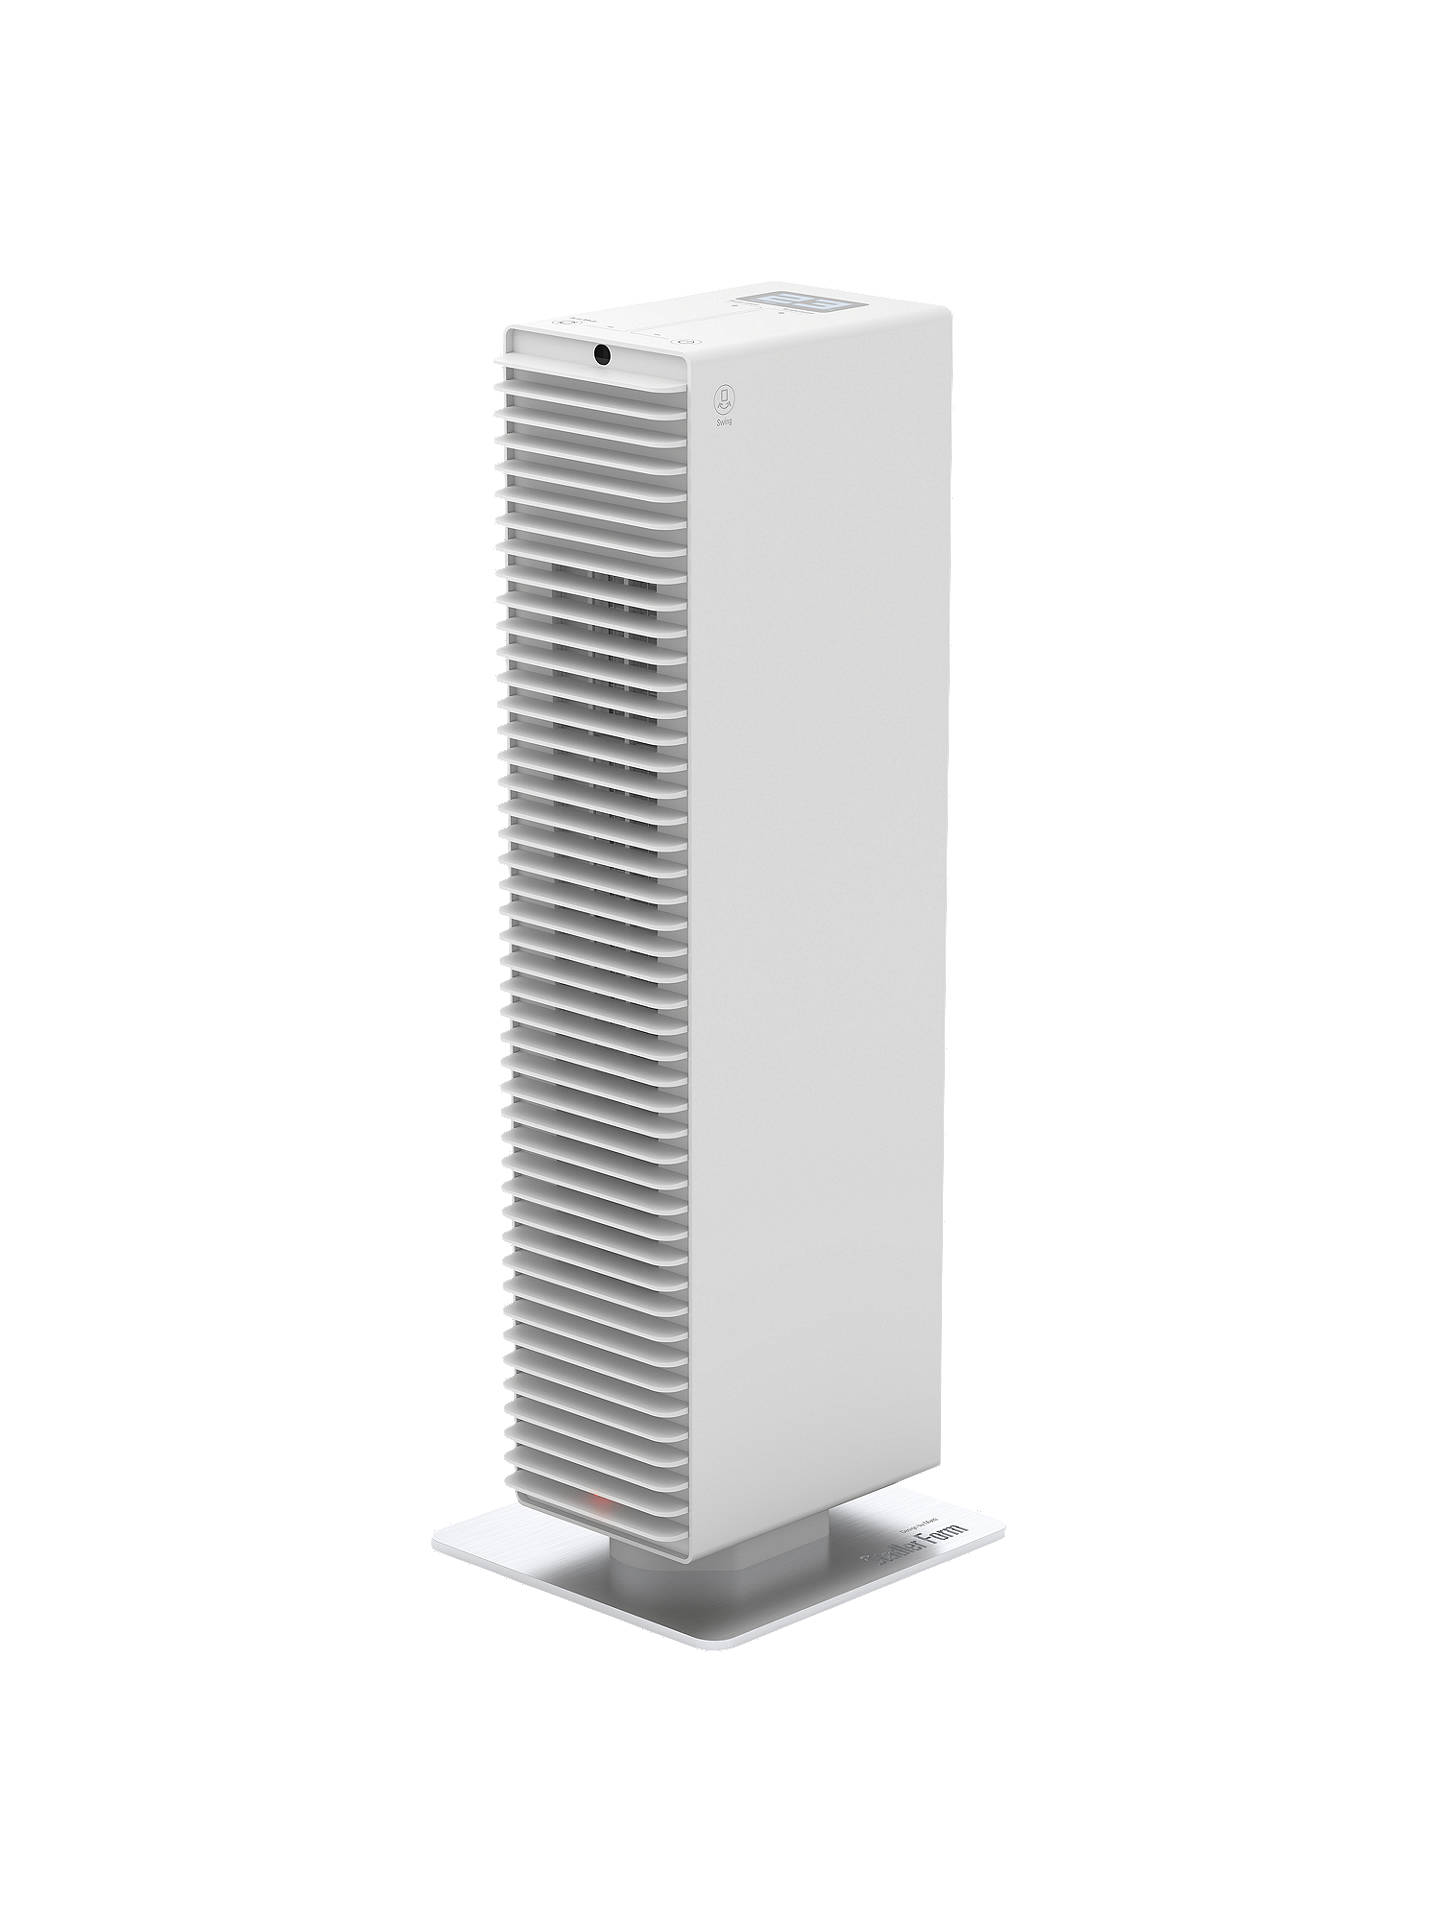 BuyStadler Form Paul Adaptive Heat™ Fan Heater, White Online at johnlewis.com